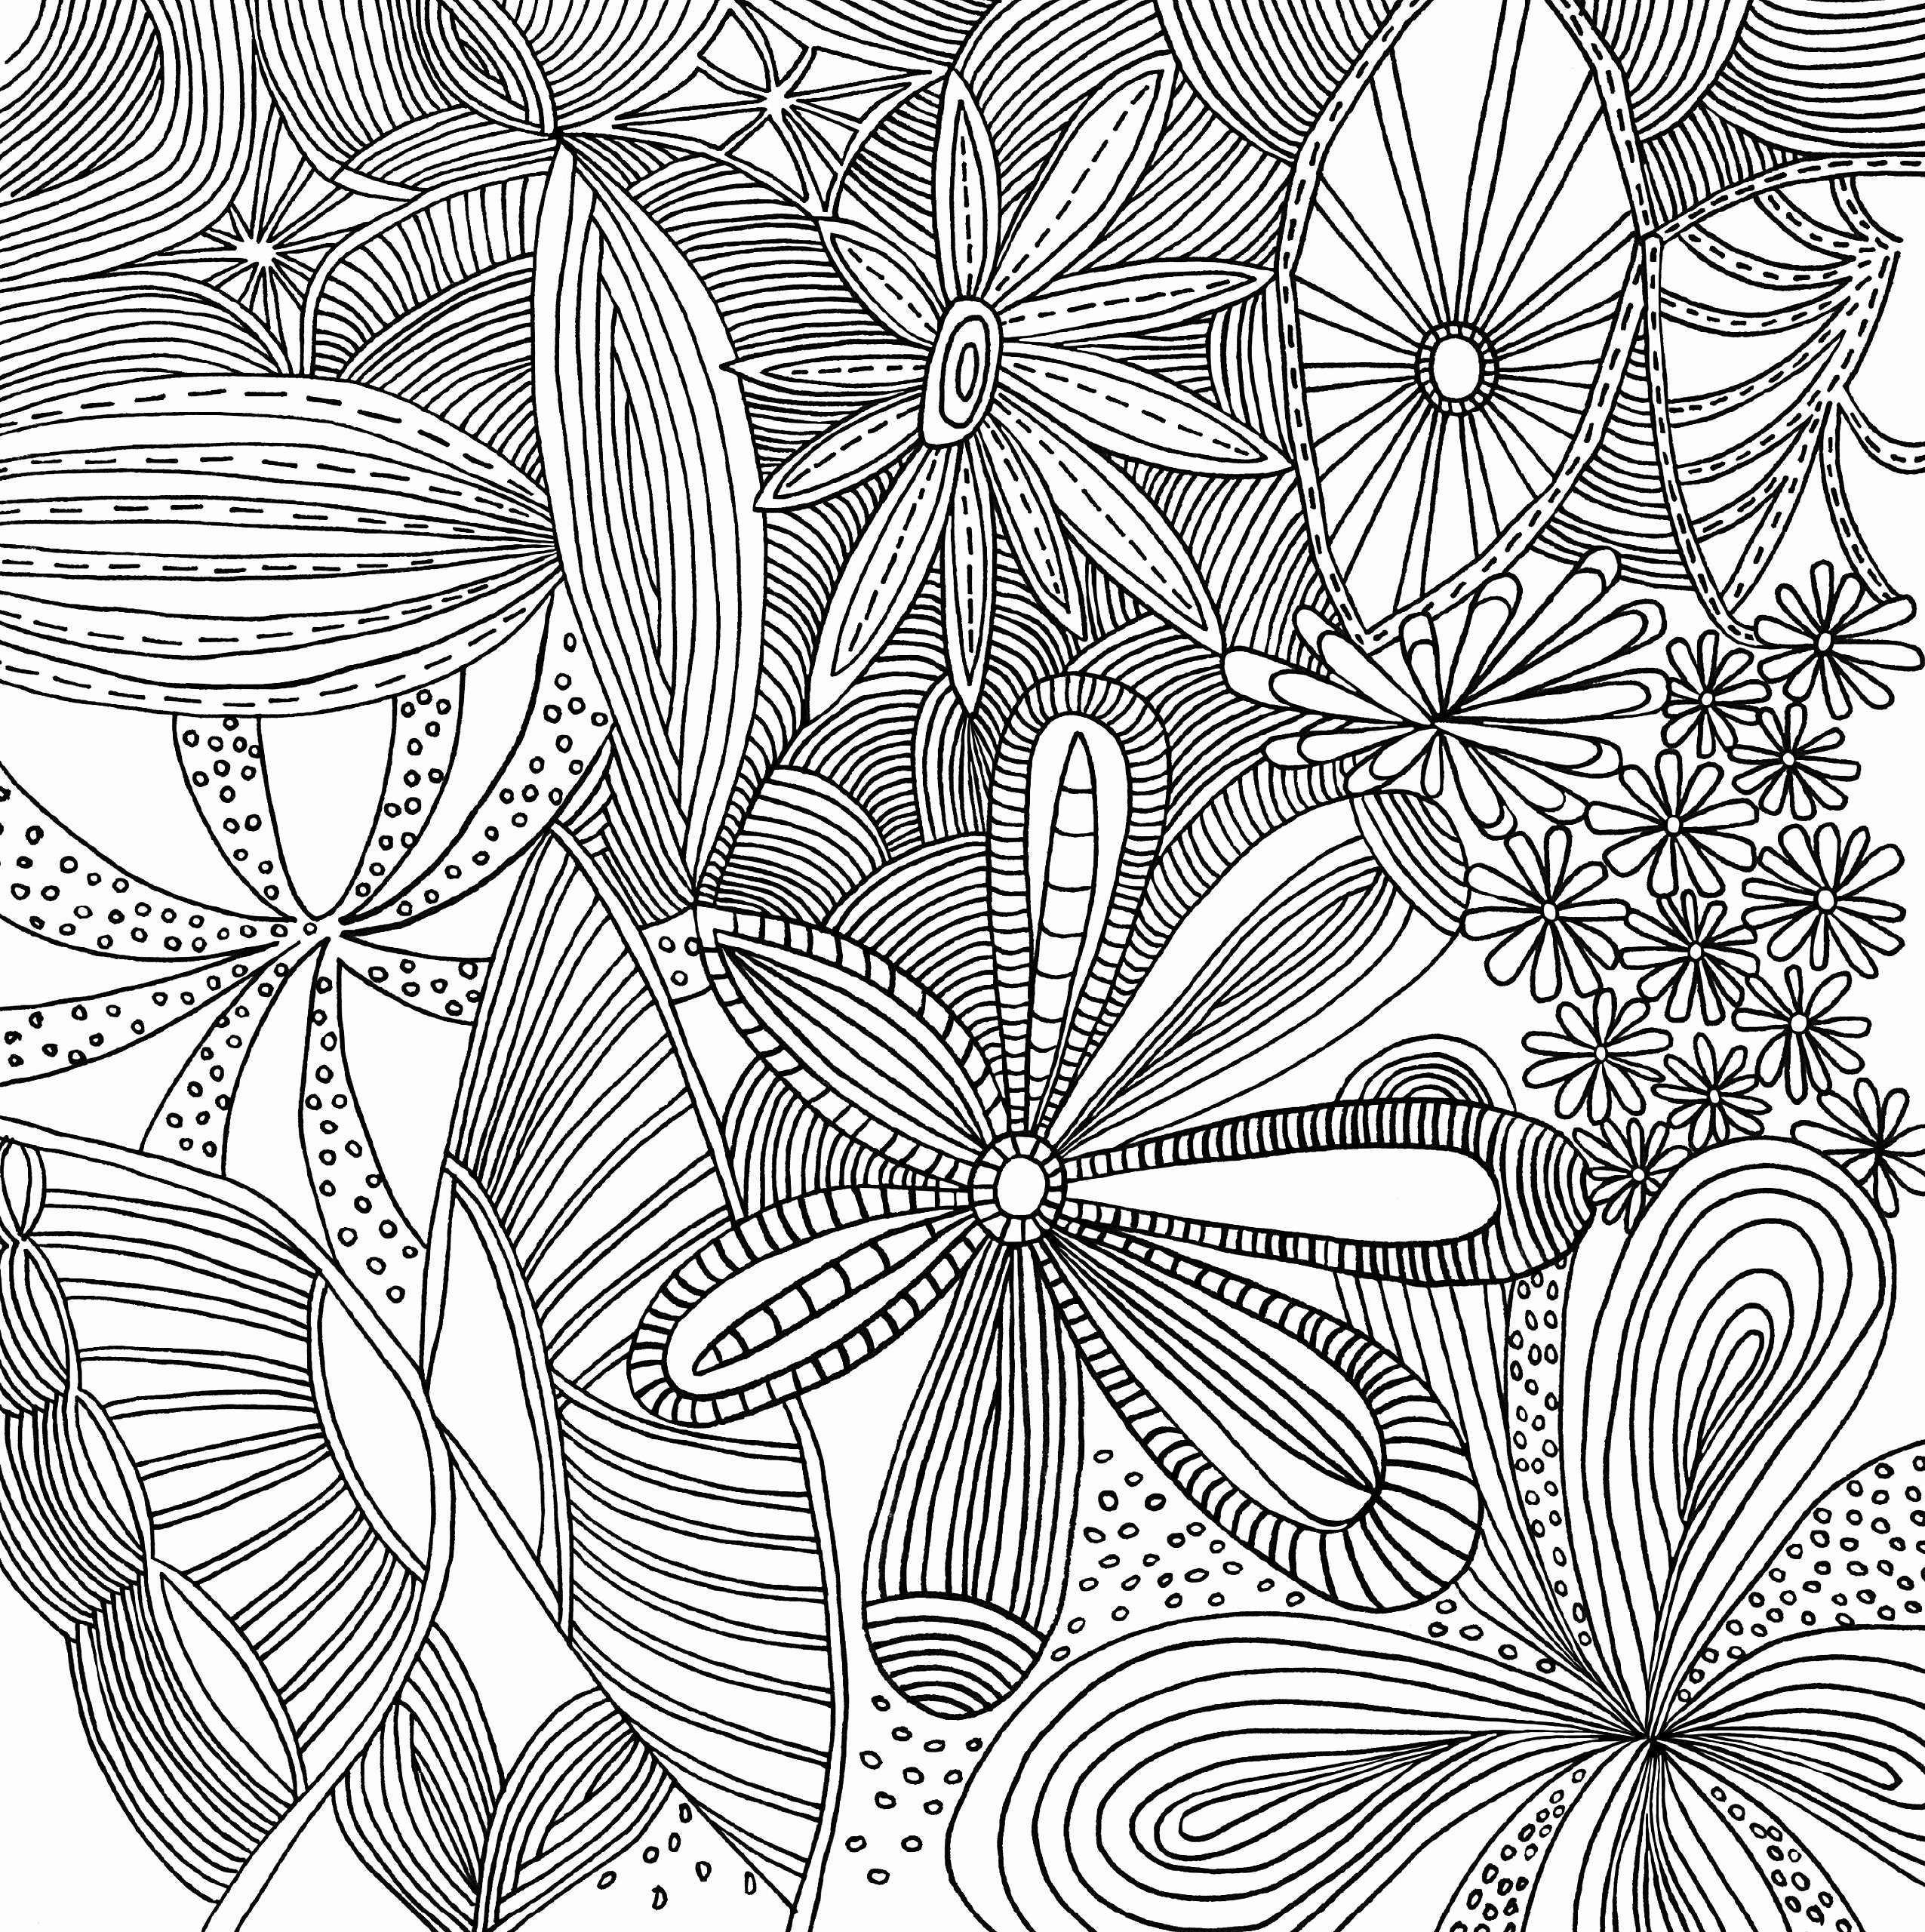 galle vase value of art glass vase inspirational christmas coloring pages stained glass within art glass vase inspirational christmas coloring pages stained glass free